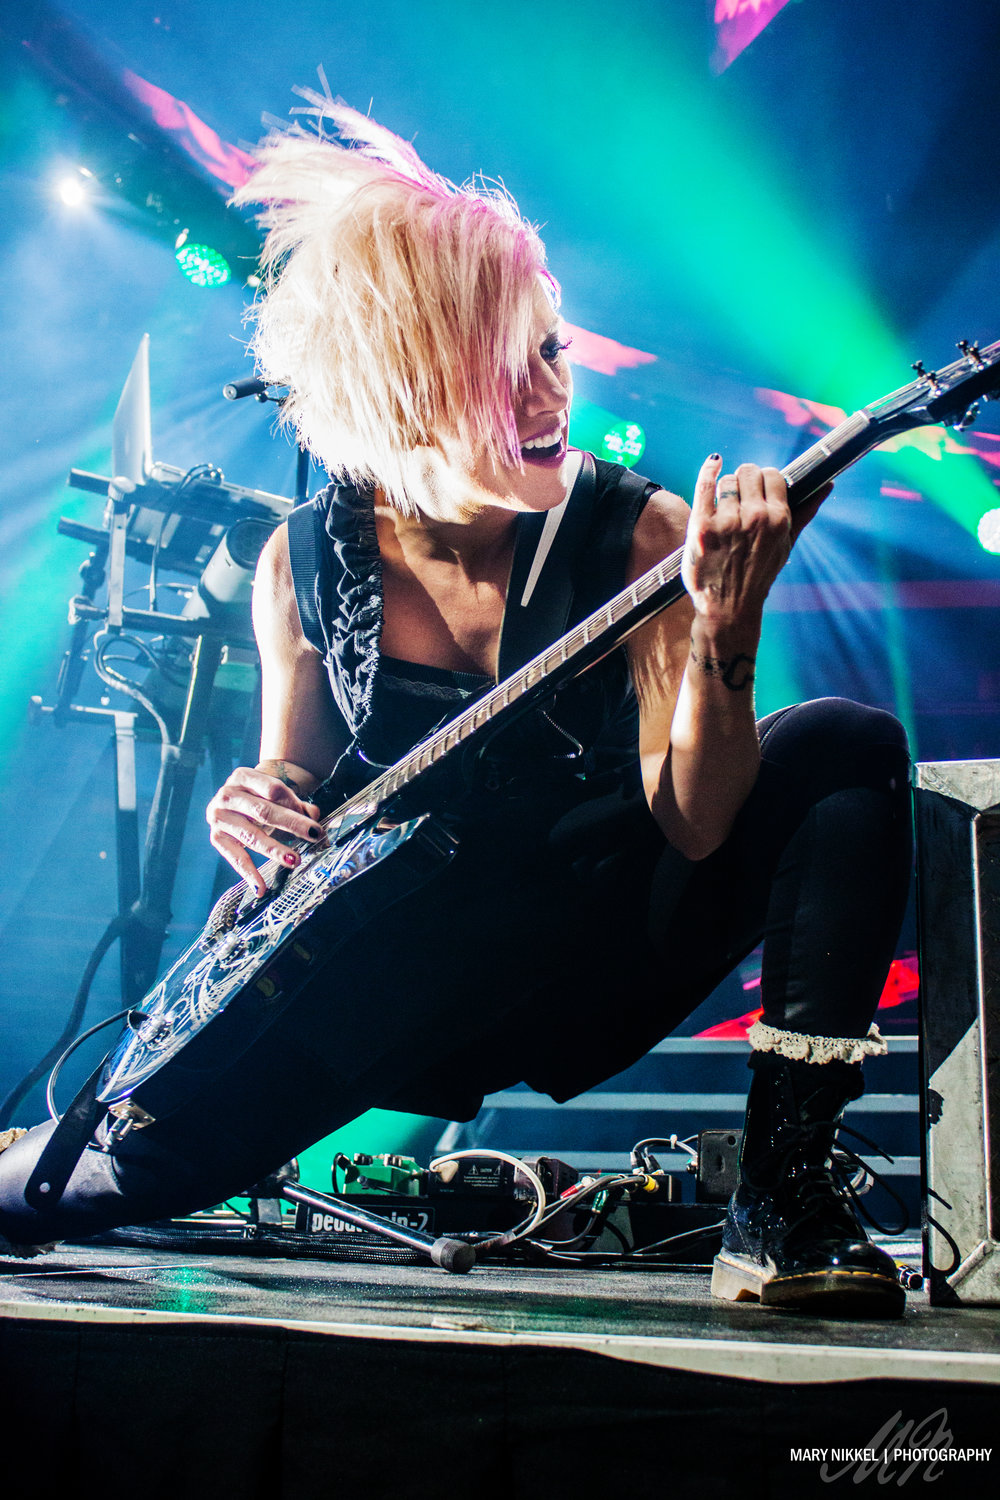 Korey Cooper of Skillet, photographed on Winter Jam tour 2015; featured on Skillet's Facebook page (5.1 million followers)